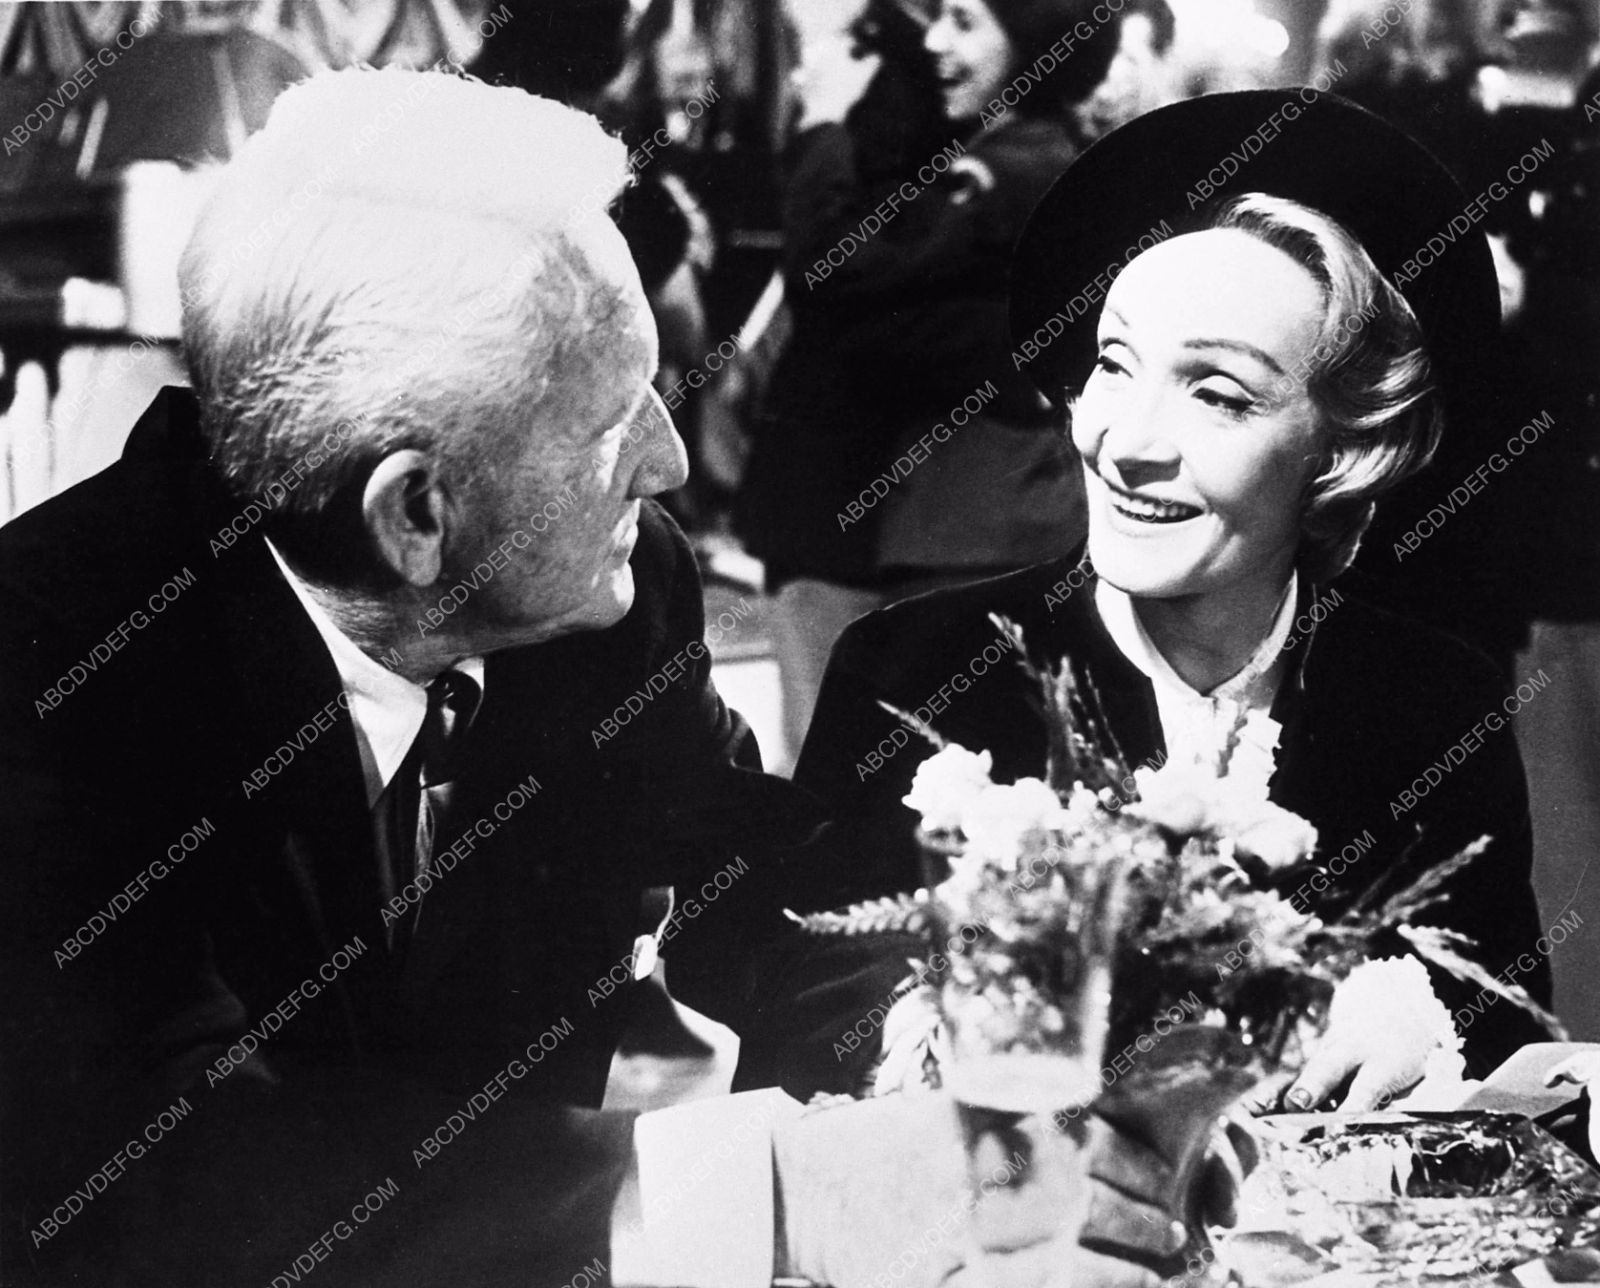 Spencer Tracy Marlene Dietrich Judgement at Nuremberg 720-04